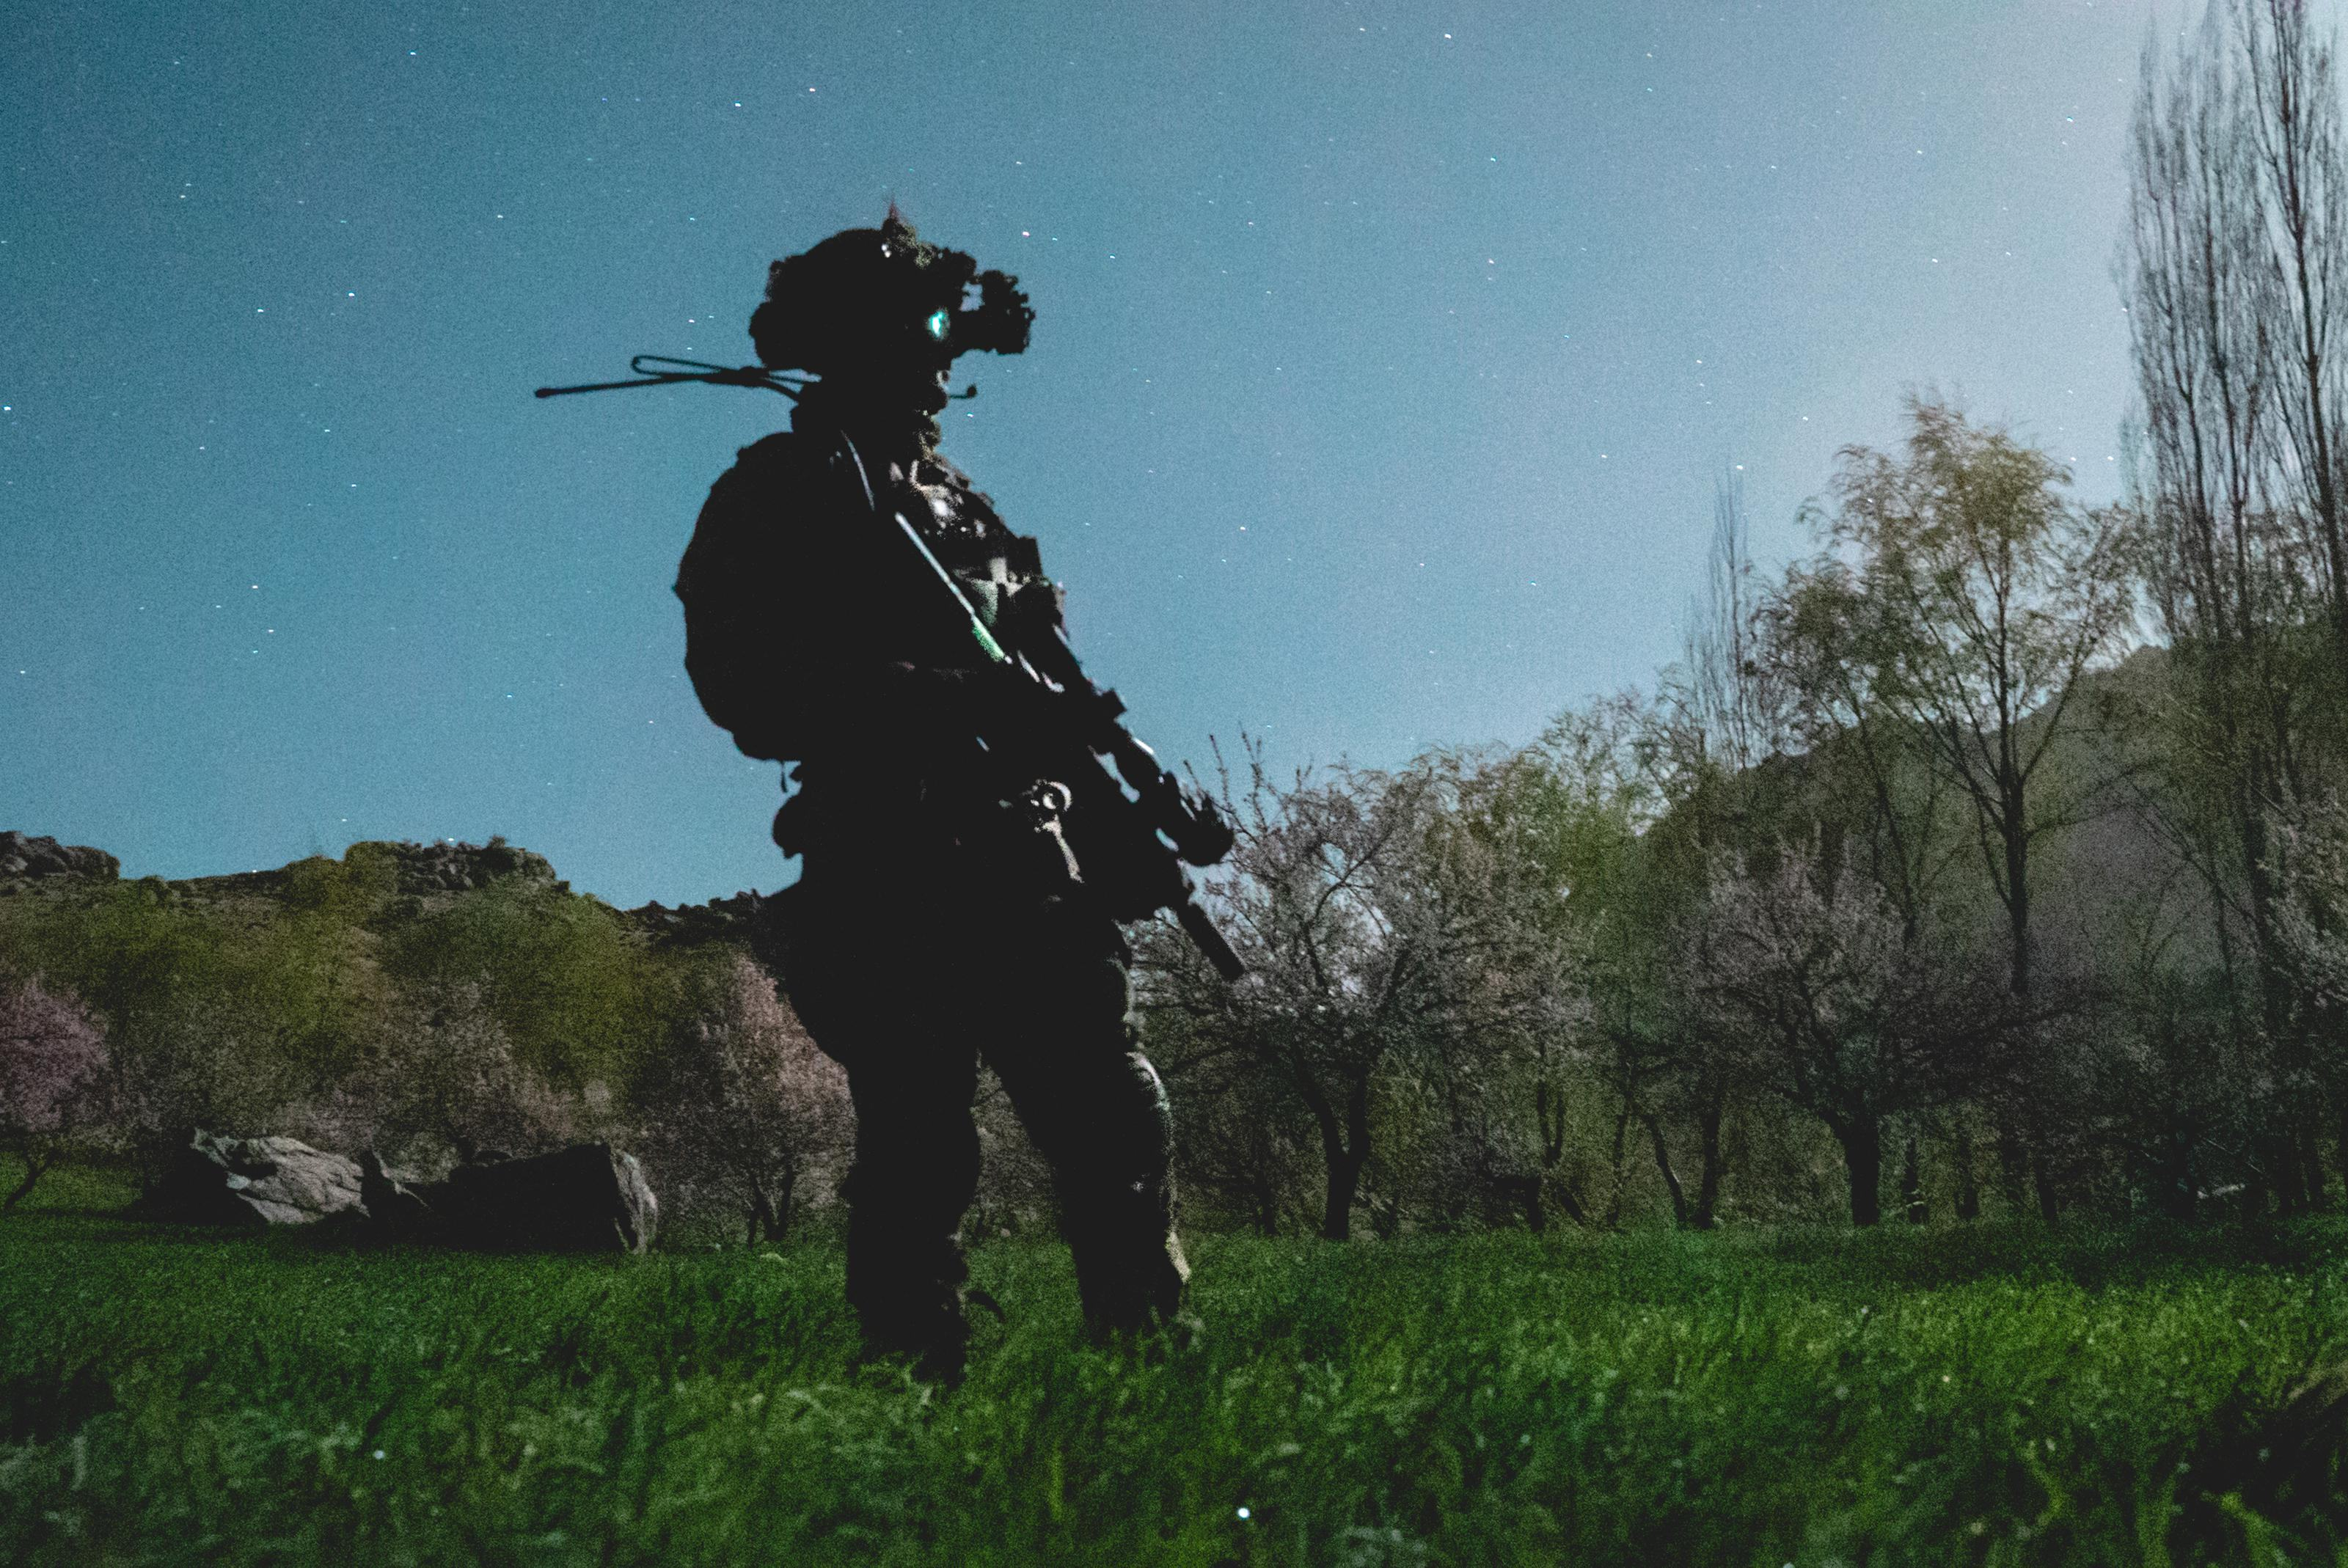 A United States Army Ranger from the 75th Ranger Regiment stands in a field during a combat operation as part of Operation Resol